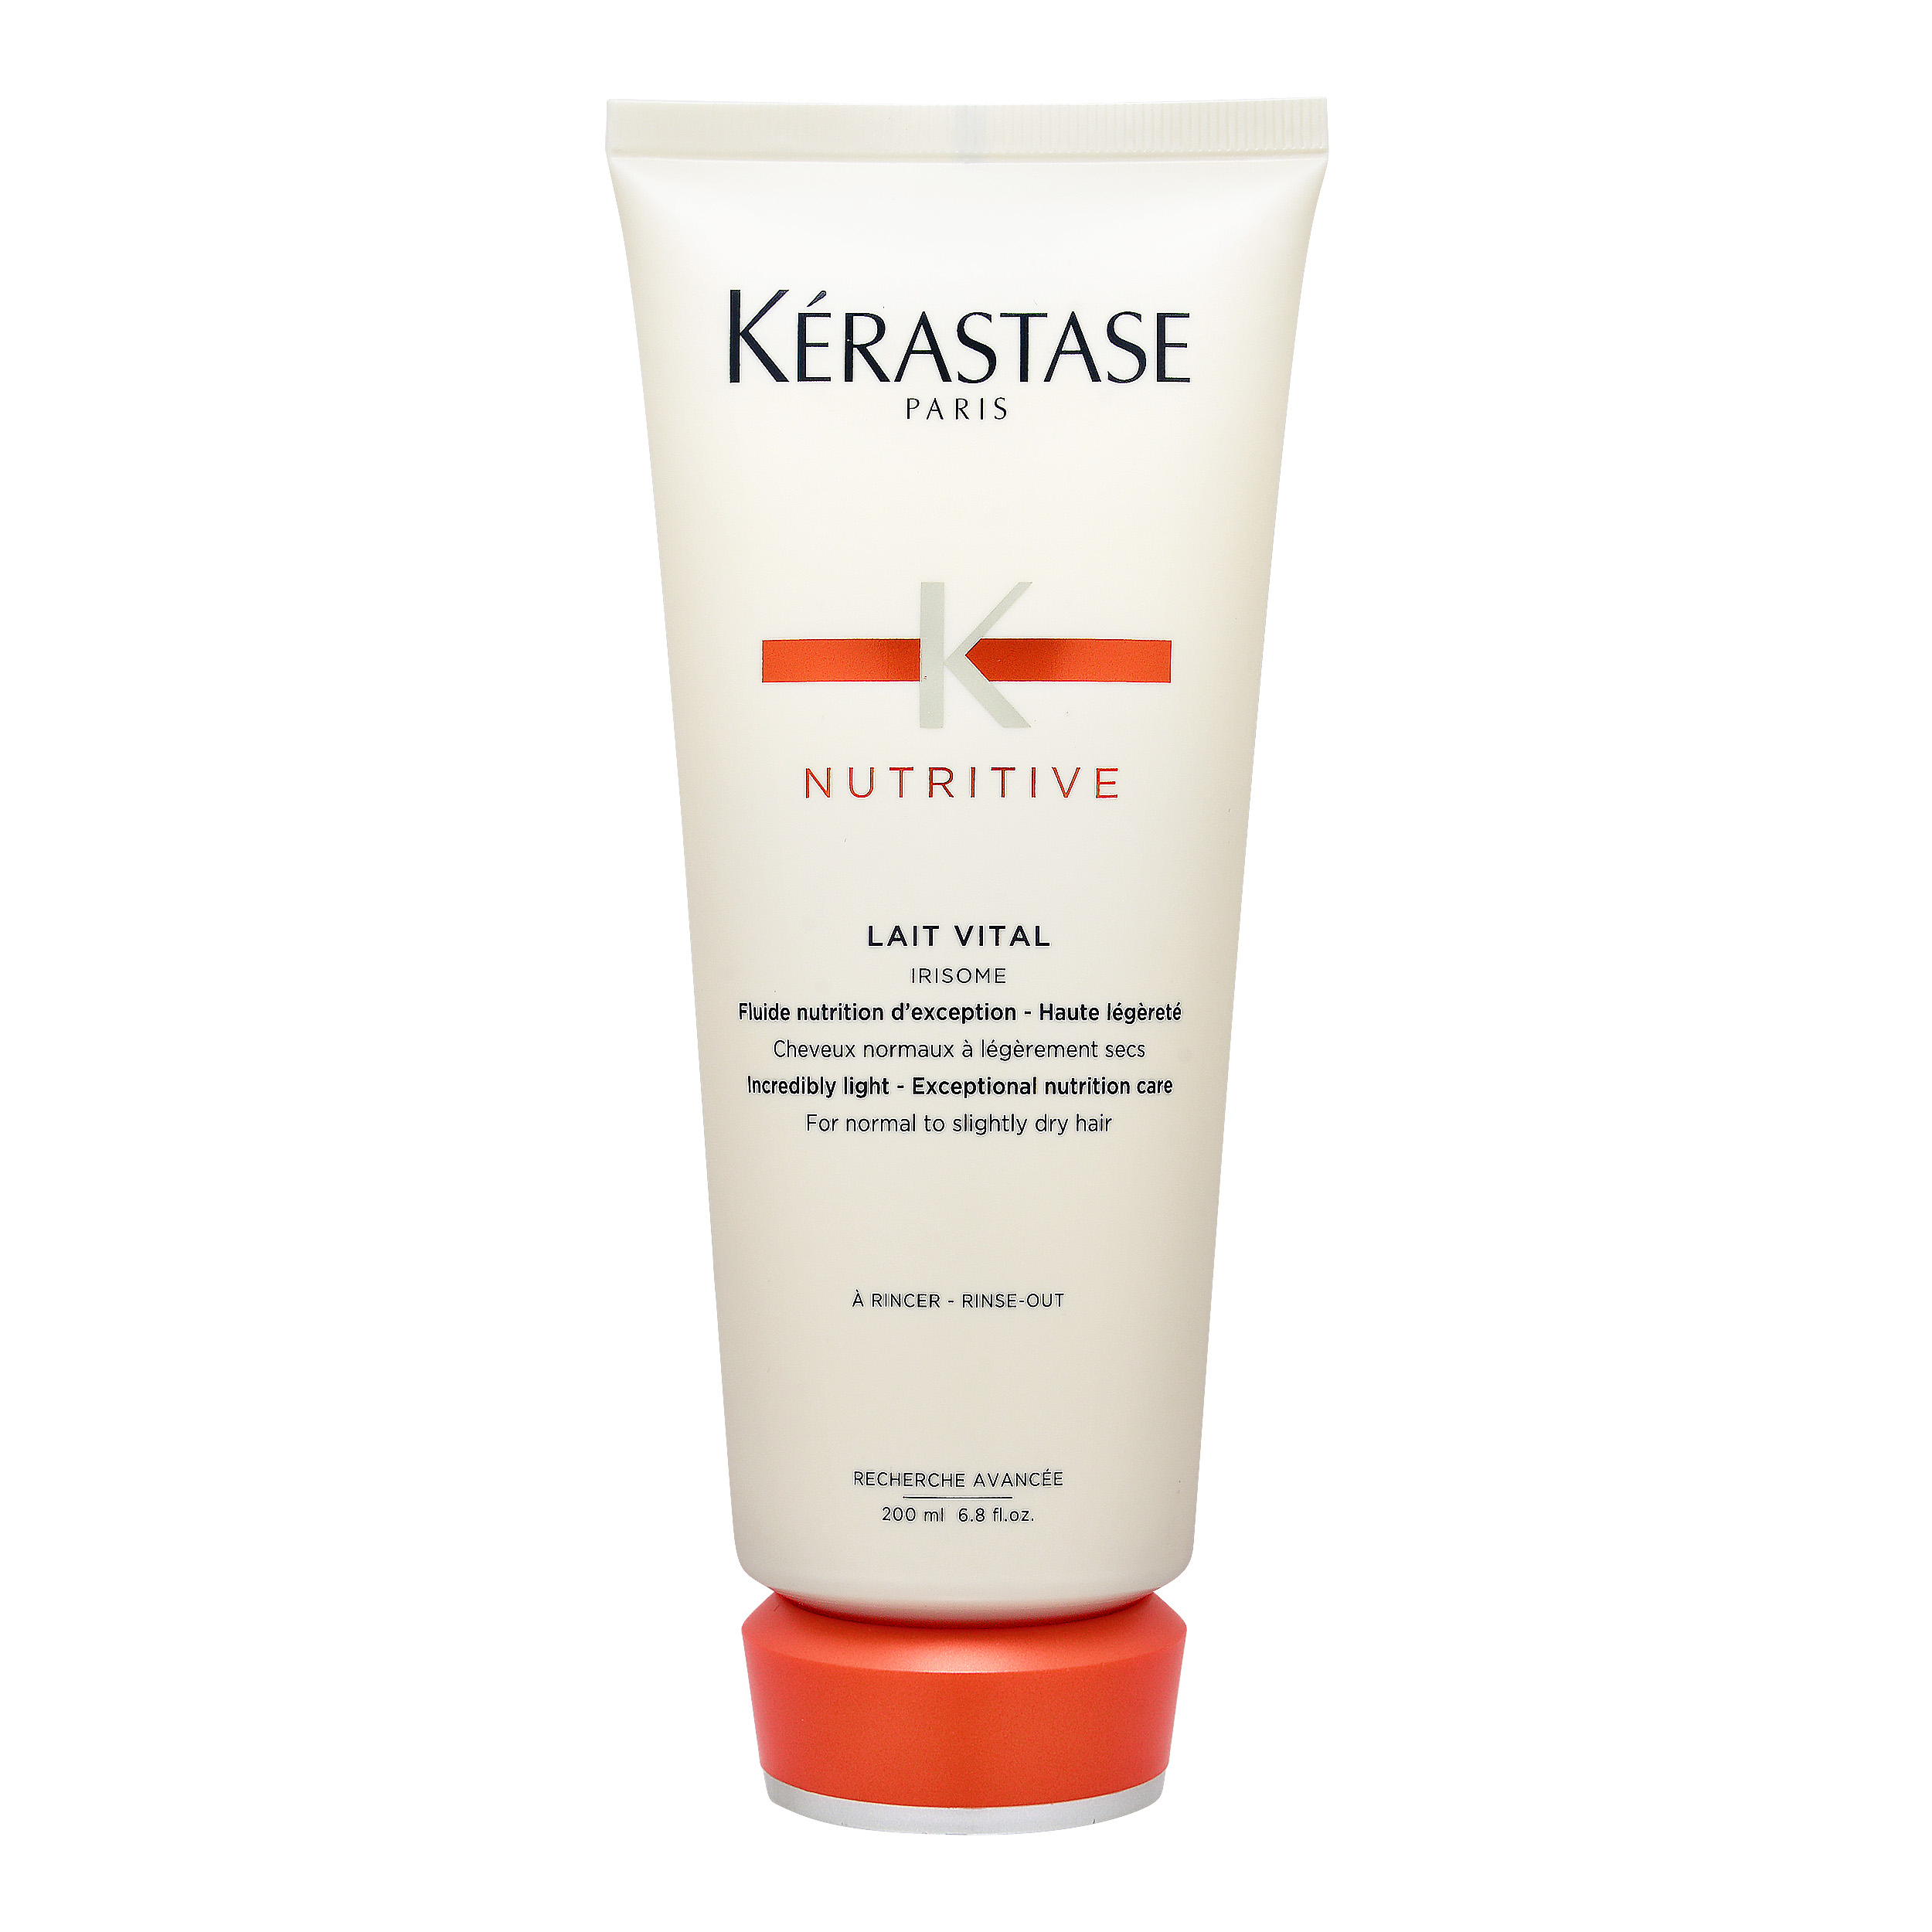 Kérastase Paris Nutritive  Lait Vital Irisome Incredibly Light - Exceptional Nutrition Care (For Normal to Slightly Dry Hair) 6.8oz, 200ml